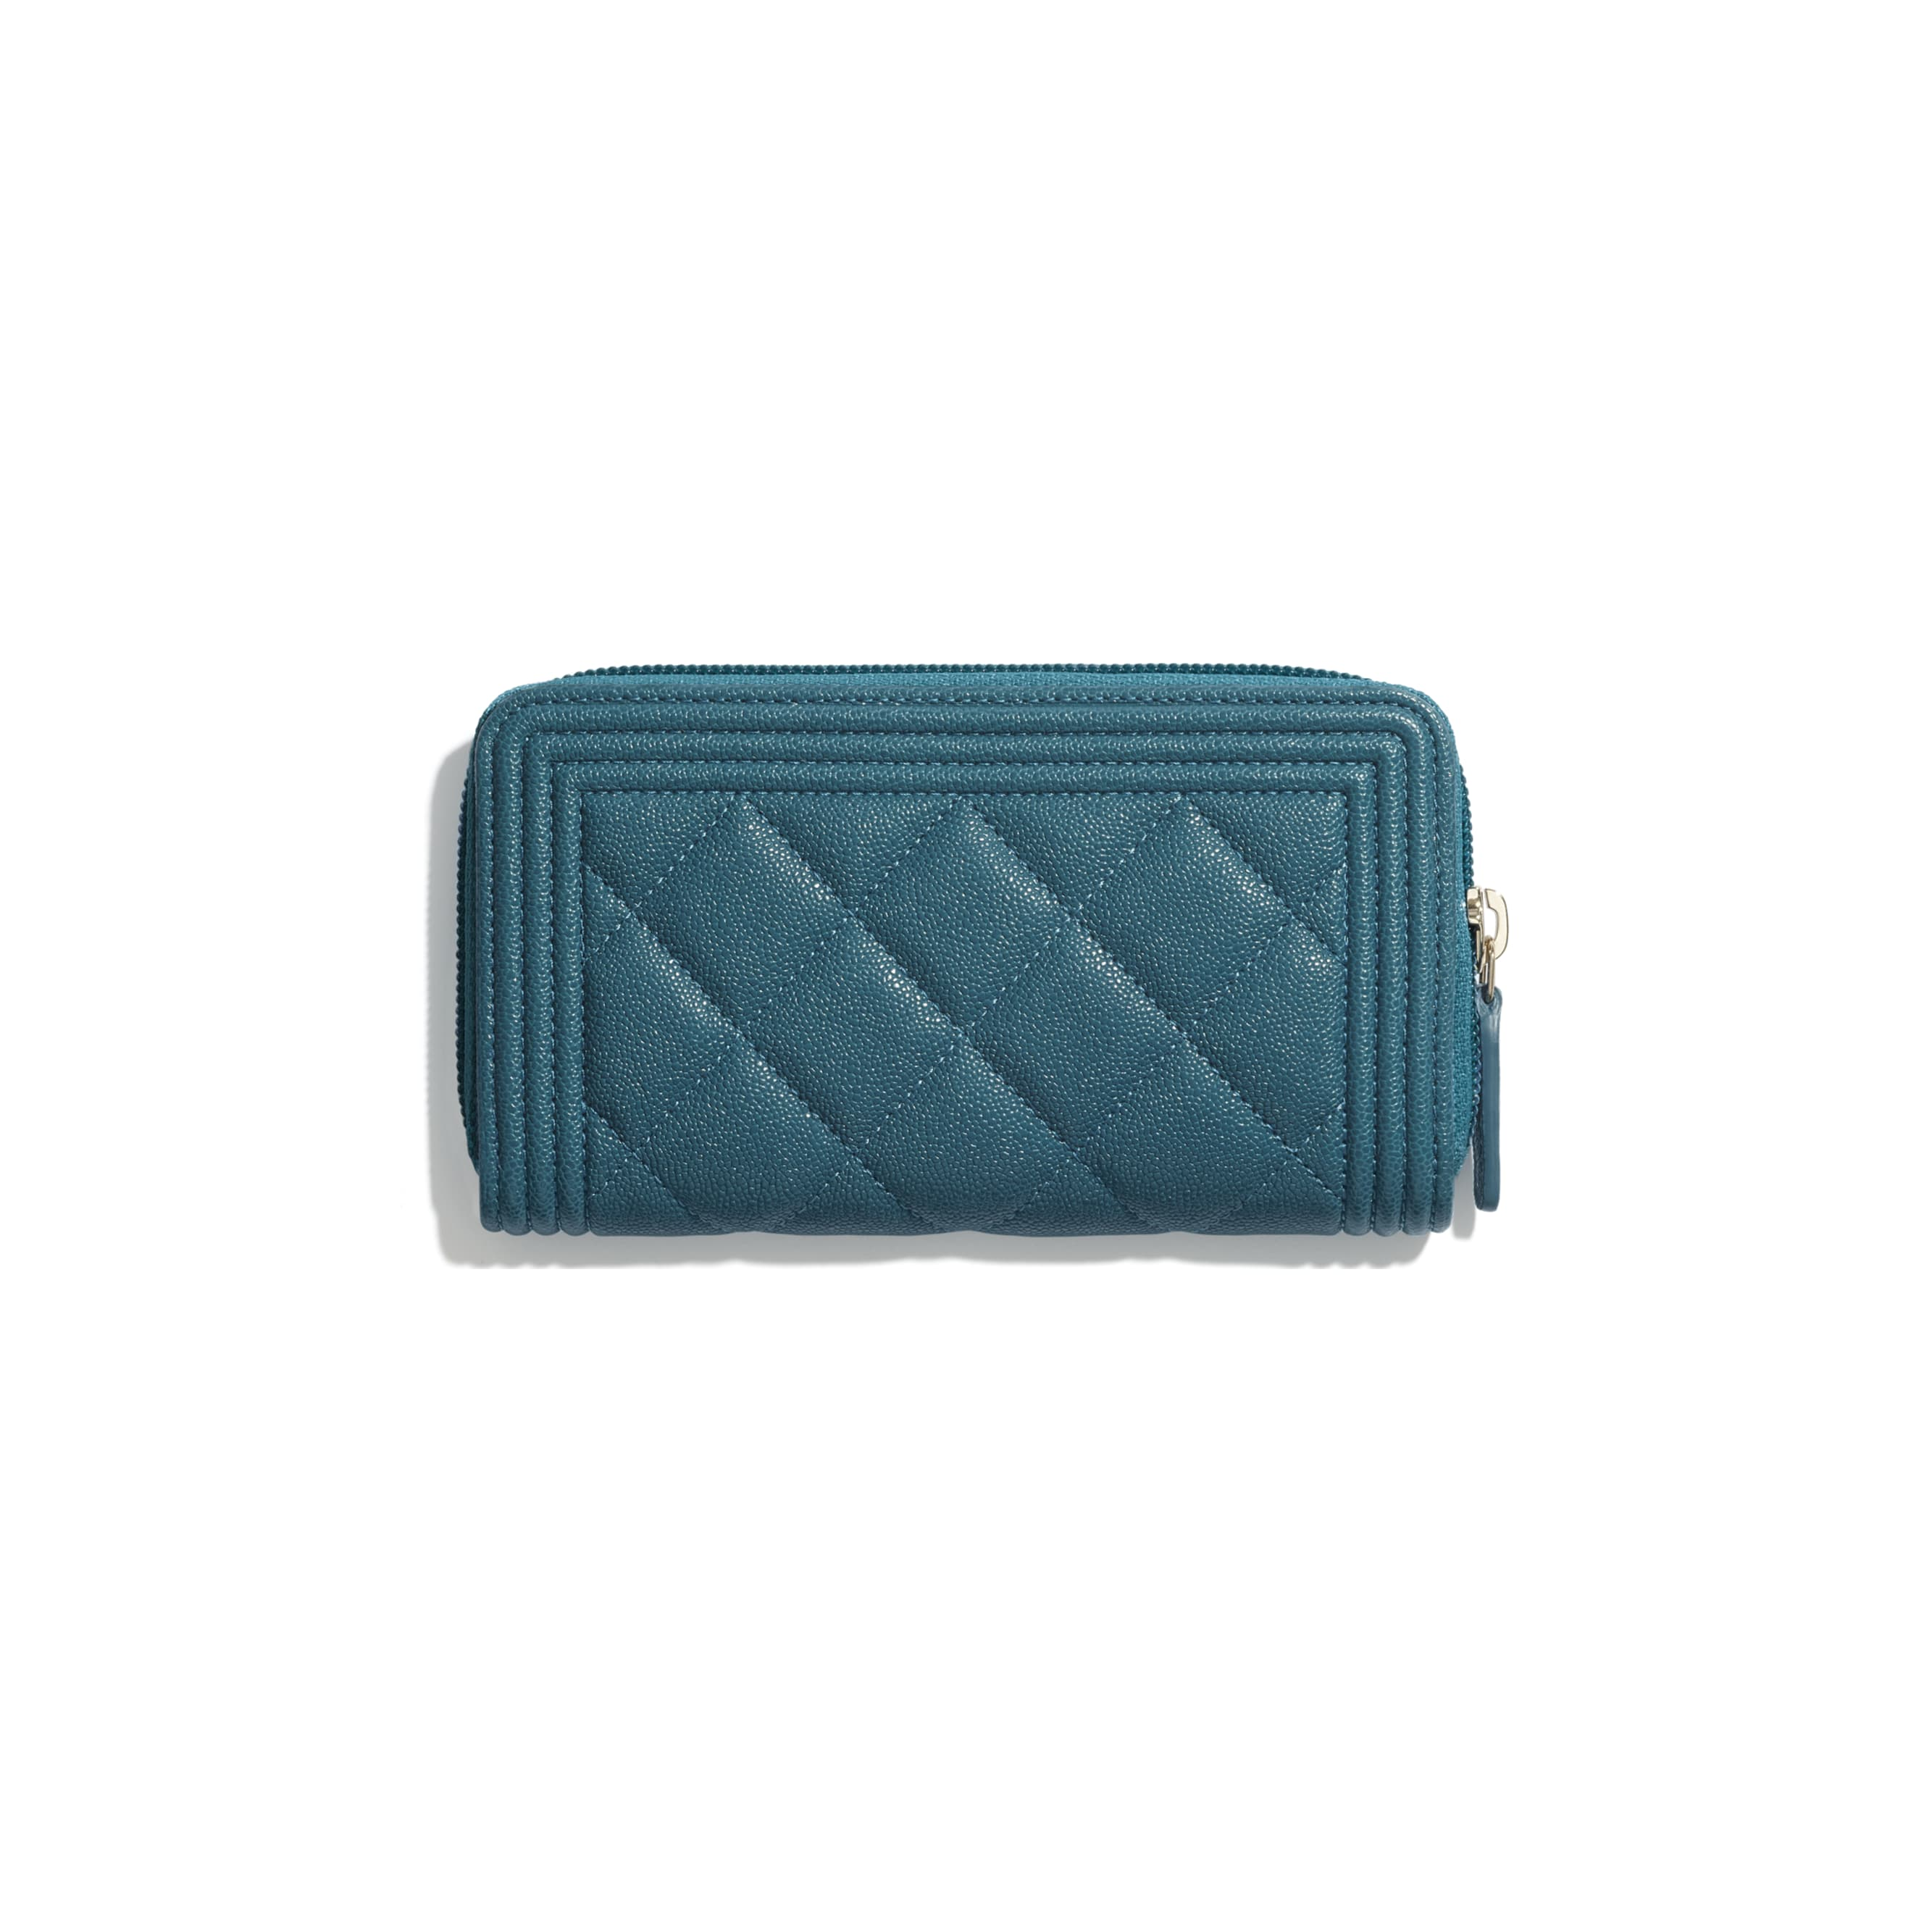 BOY CHANEL Zipped Wallet - Turquoise - Grained Calfskin & Gold-Tone Metal - CHANEL - Alternative view - see standard sized version